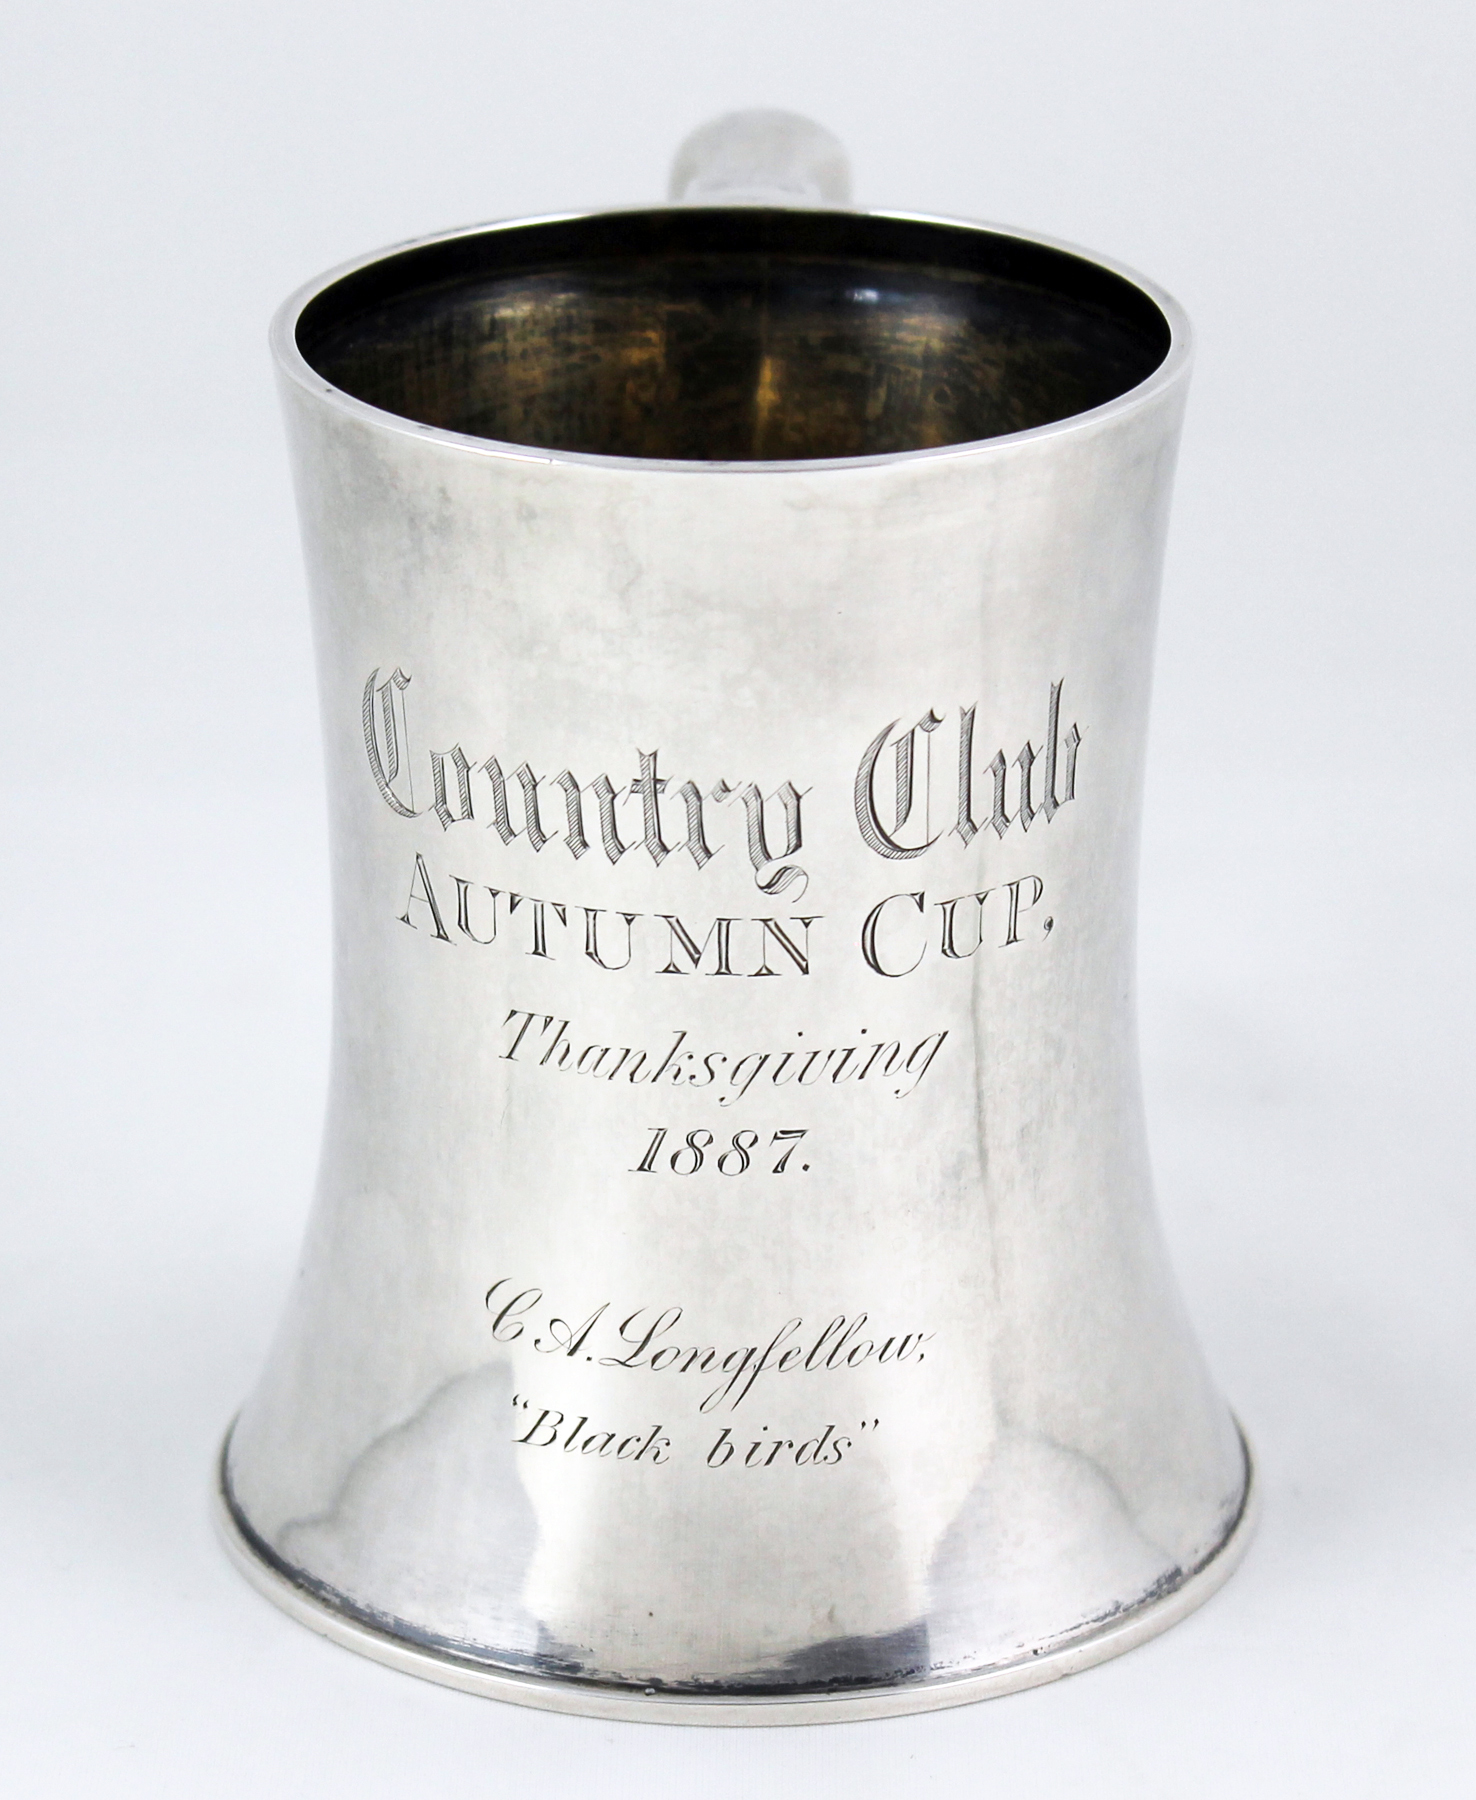 The Country Club Autumn Cup for 1887, won by Charles A. Longfellow.